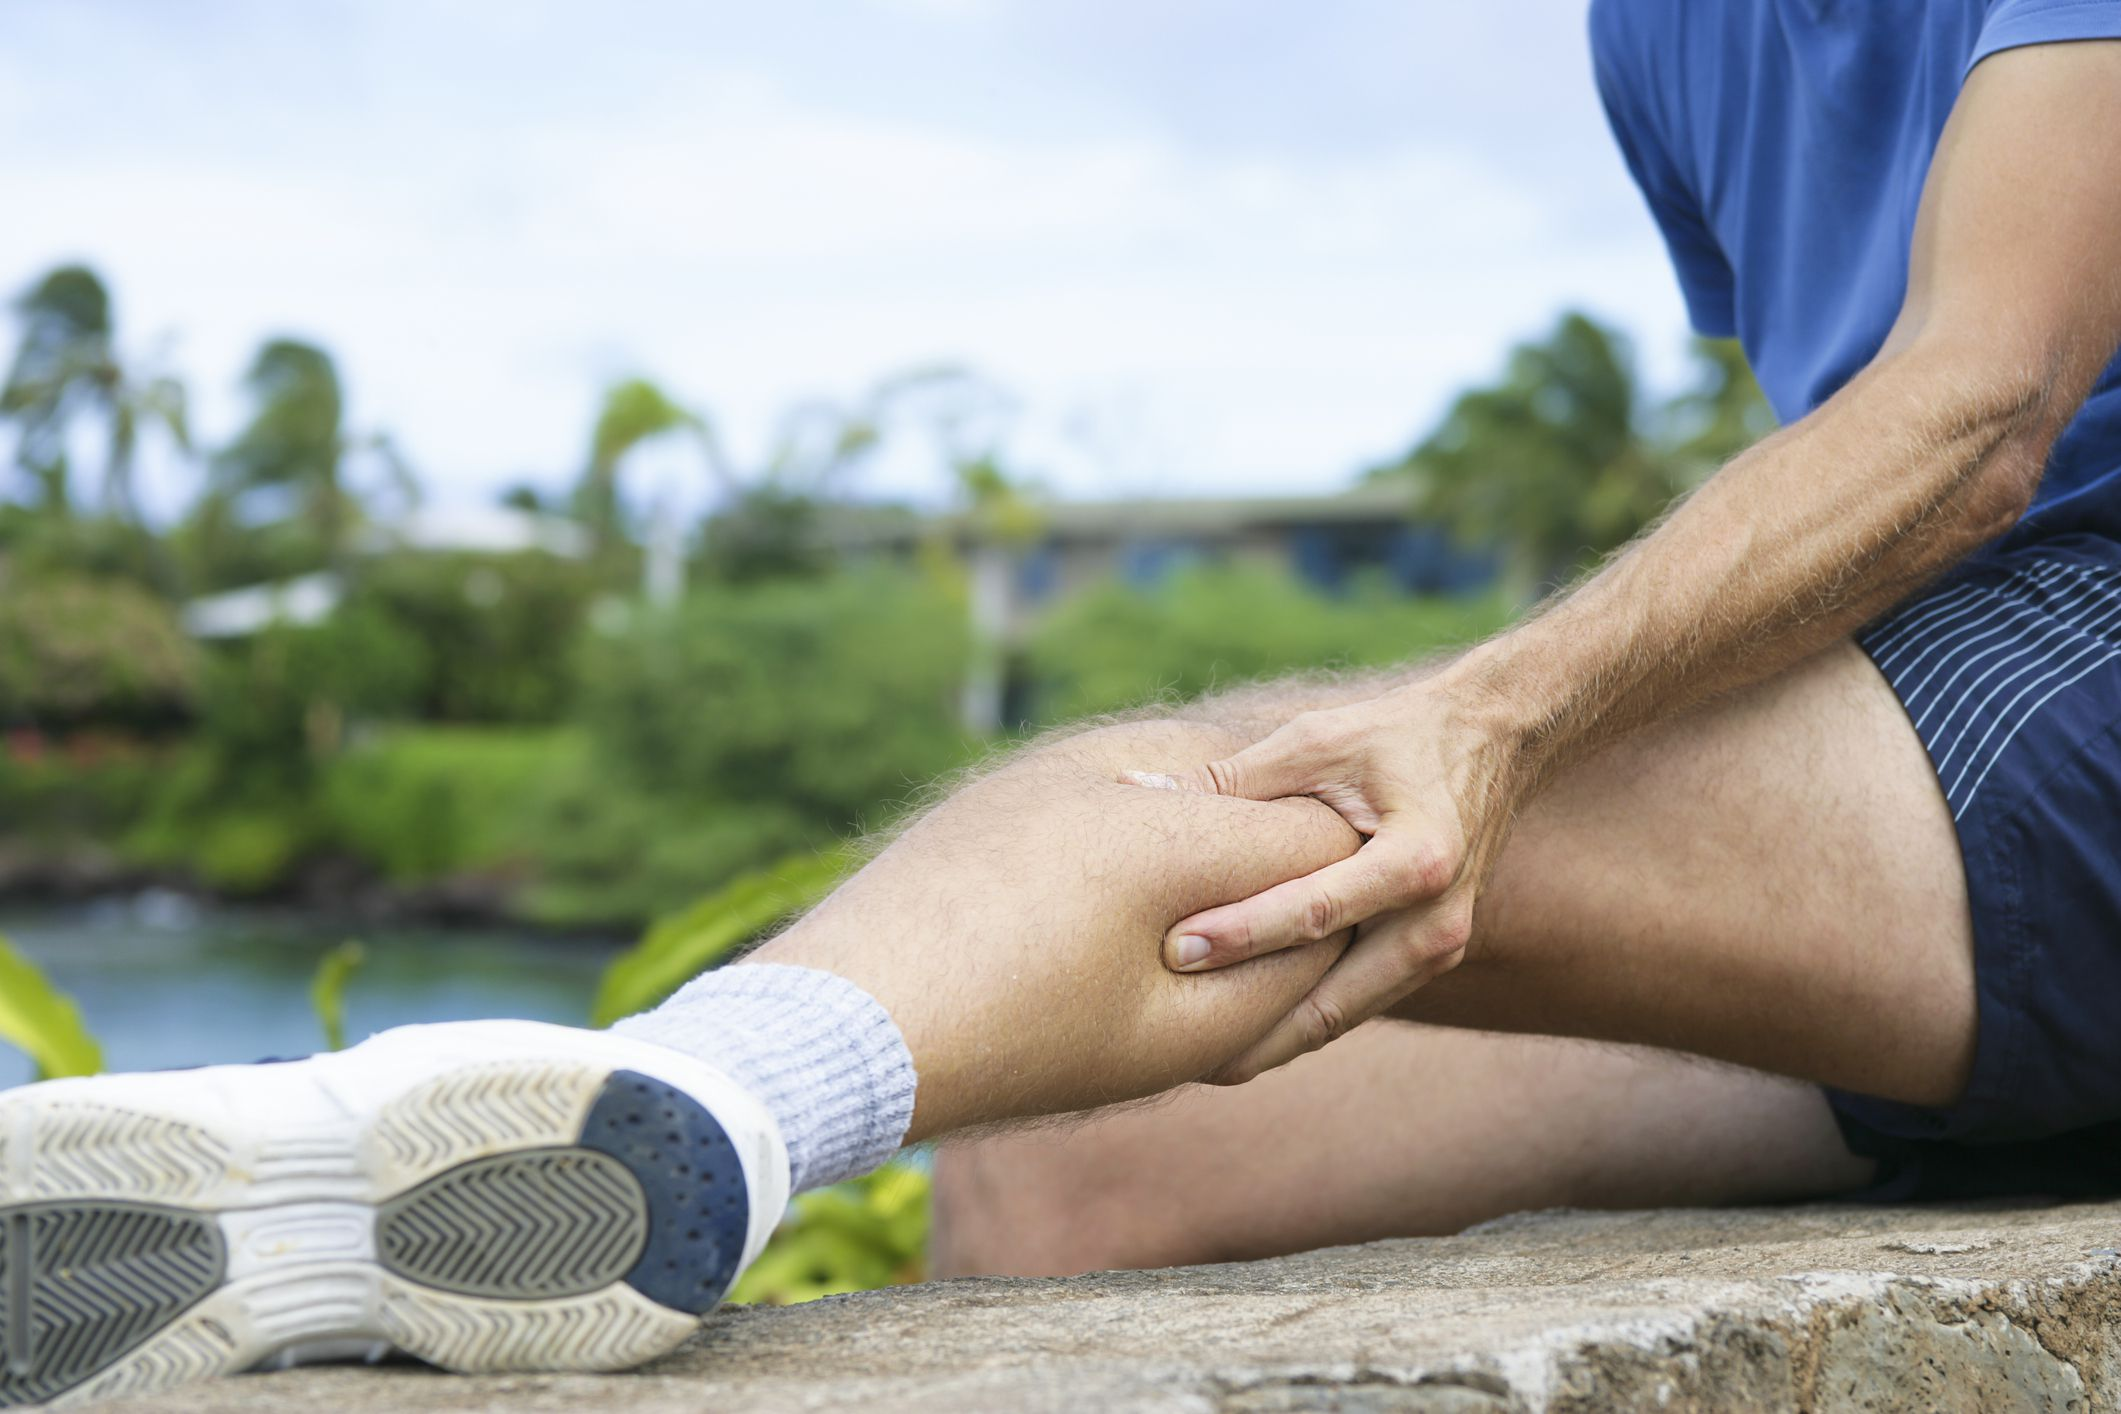 Calf Pain: Causes, Treatment, and When to See a Doctor